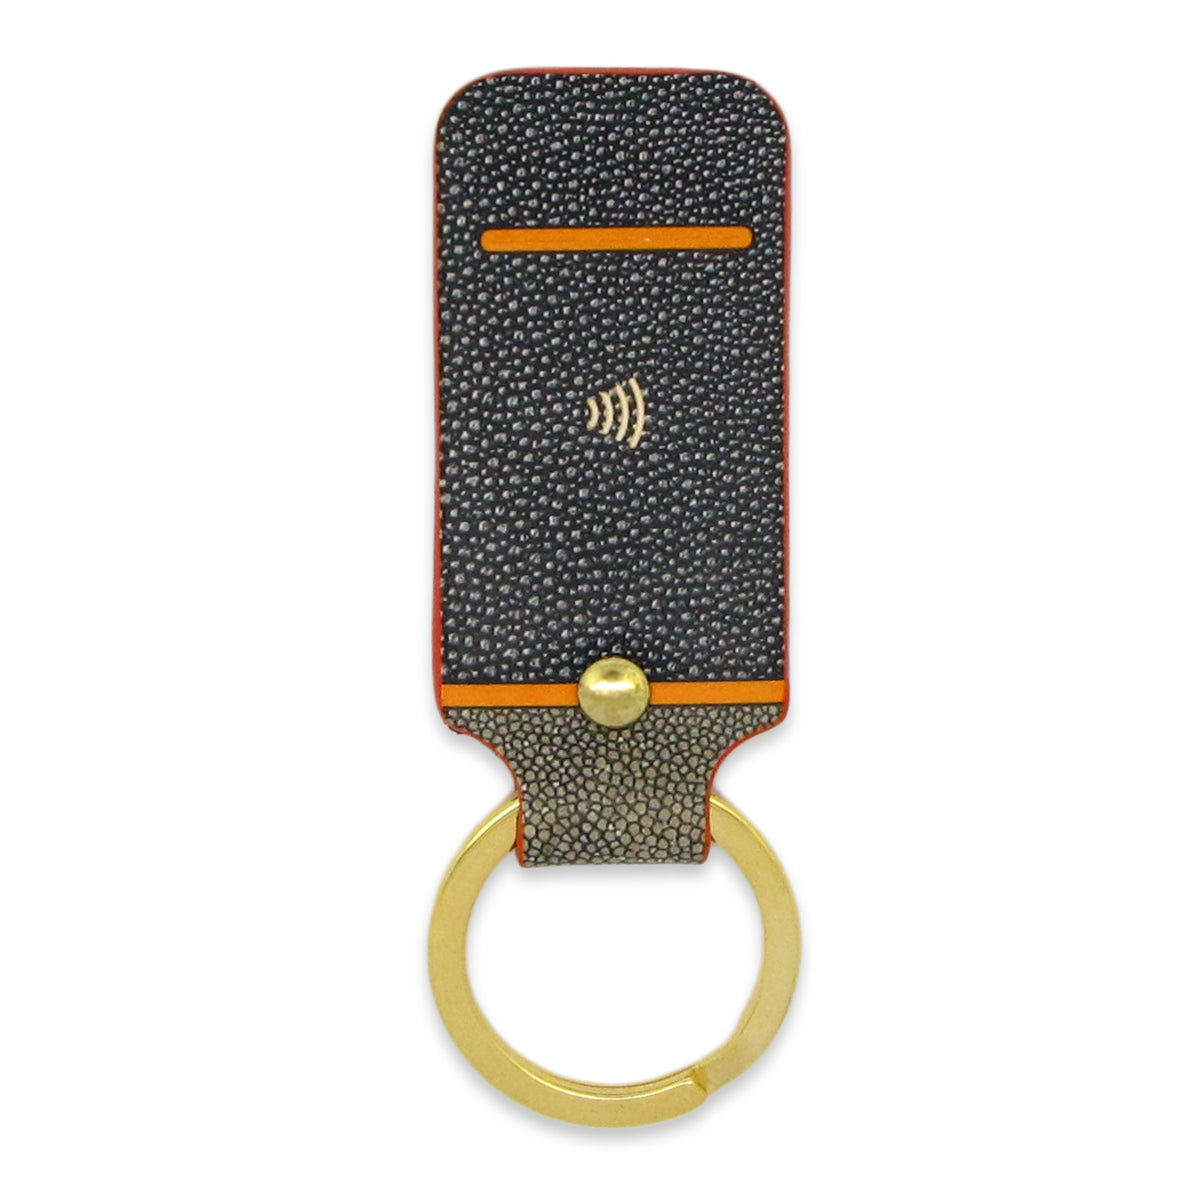 Leather Contactless Payment Key Fob - Ray Skin